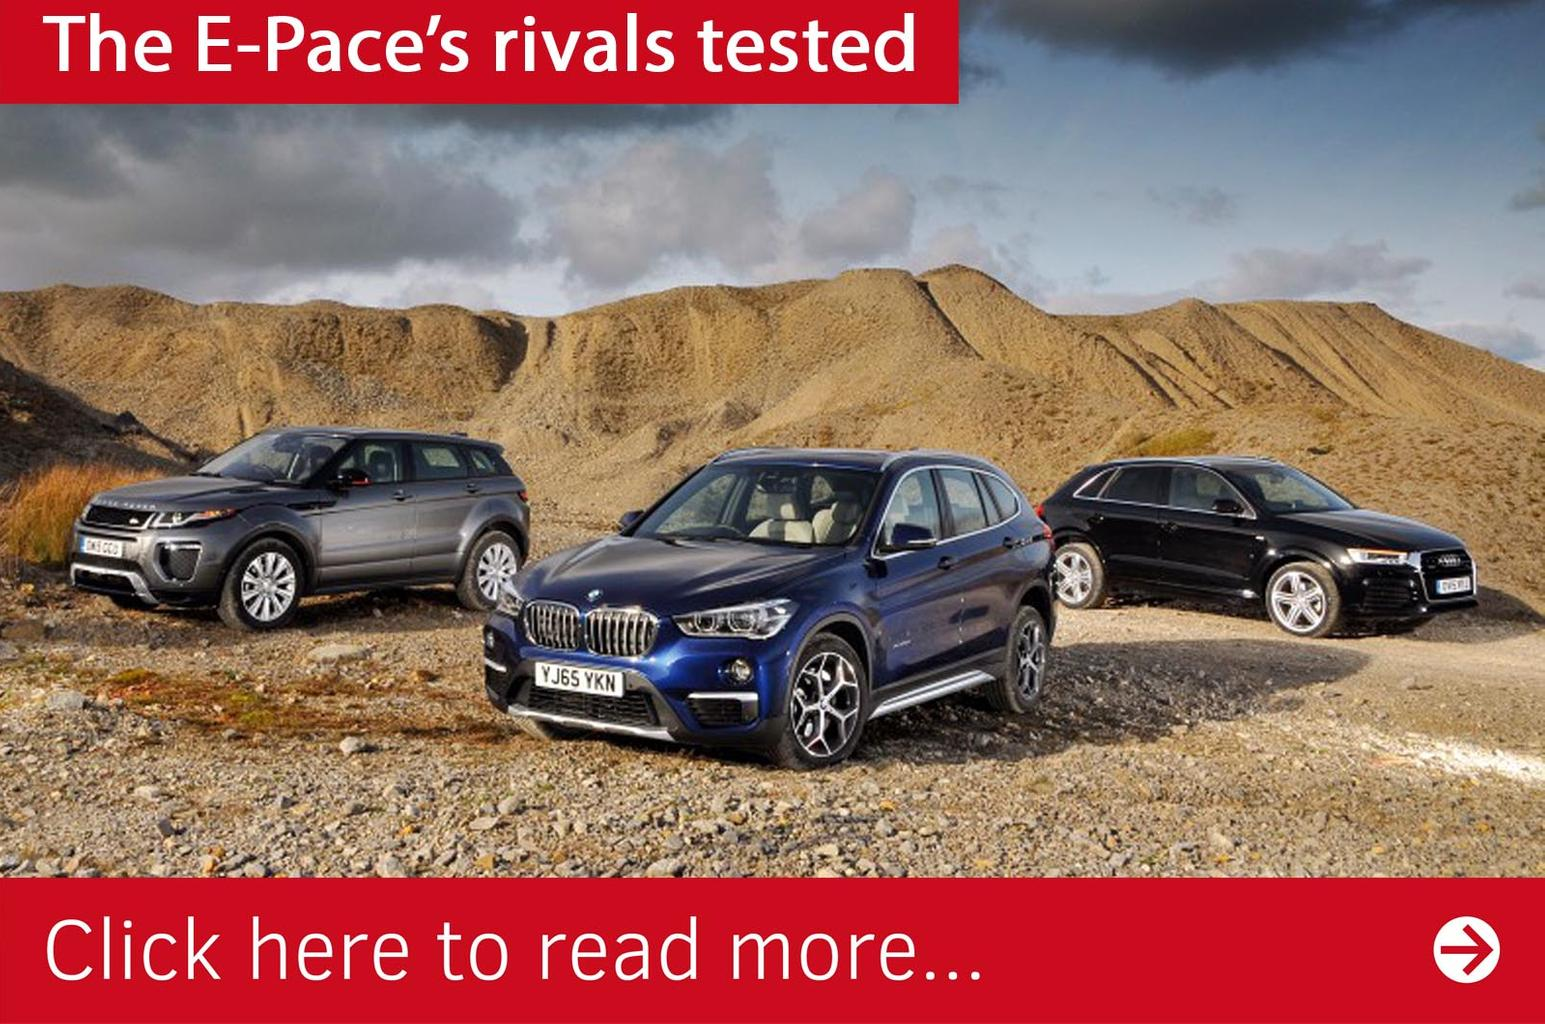 2018 Jaguar E-Pace buyer's file